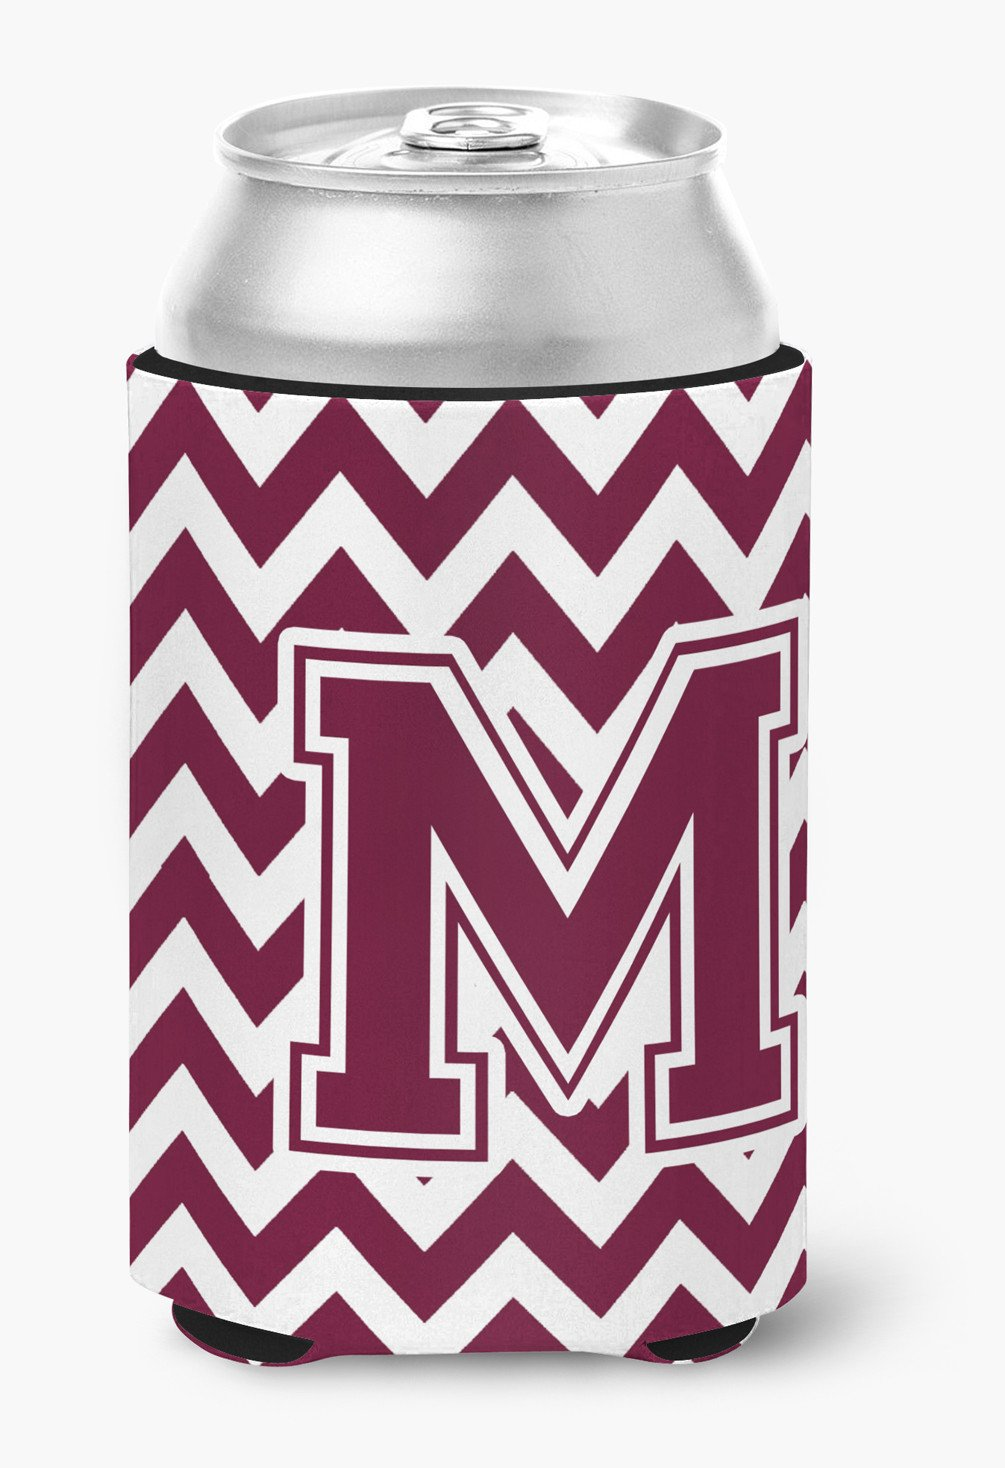 Letter M Chevron Maroon and White  Can or Bottle Hugger CJ1051-MCC by Caroline's Treasures